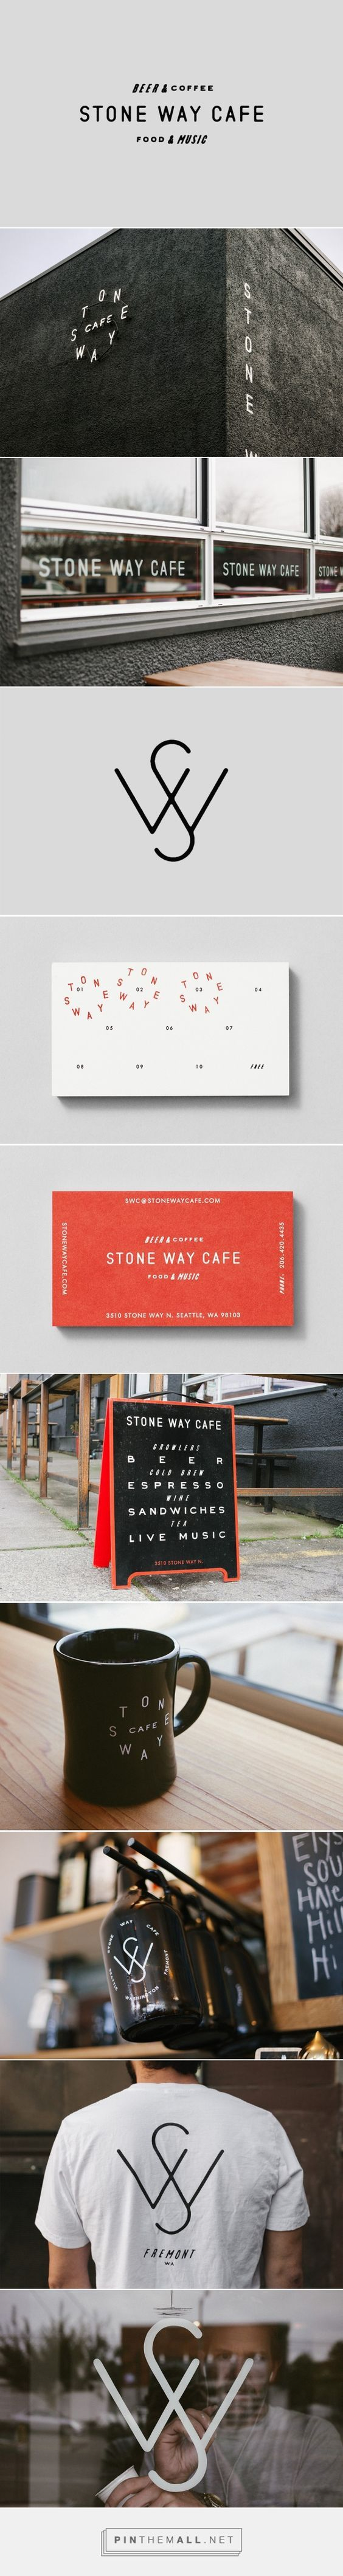 Stone Way Cafe by Shore | Fivestar Branding – Design and Branding Agency & Inspiration Gallery